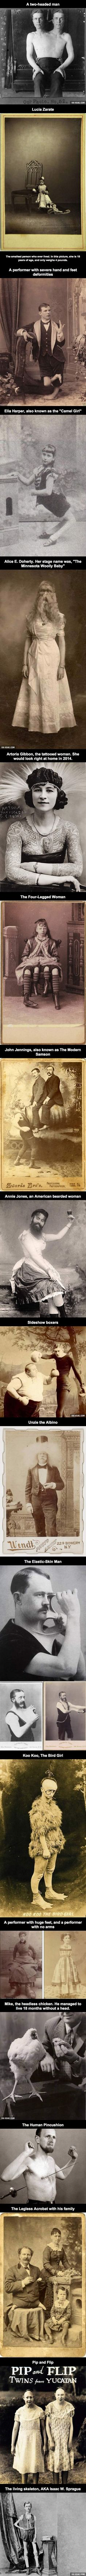 19 Vintage Photos Of Sideshow Circus Performers | I don't know if 100% of those are real photographs, because they liked a good old montage back then but still, I kinda love it!